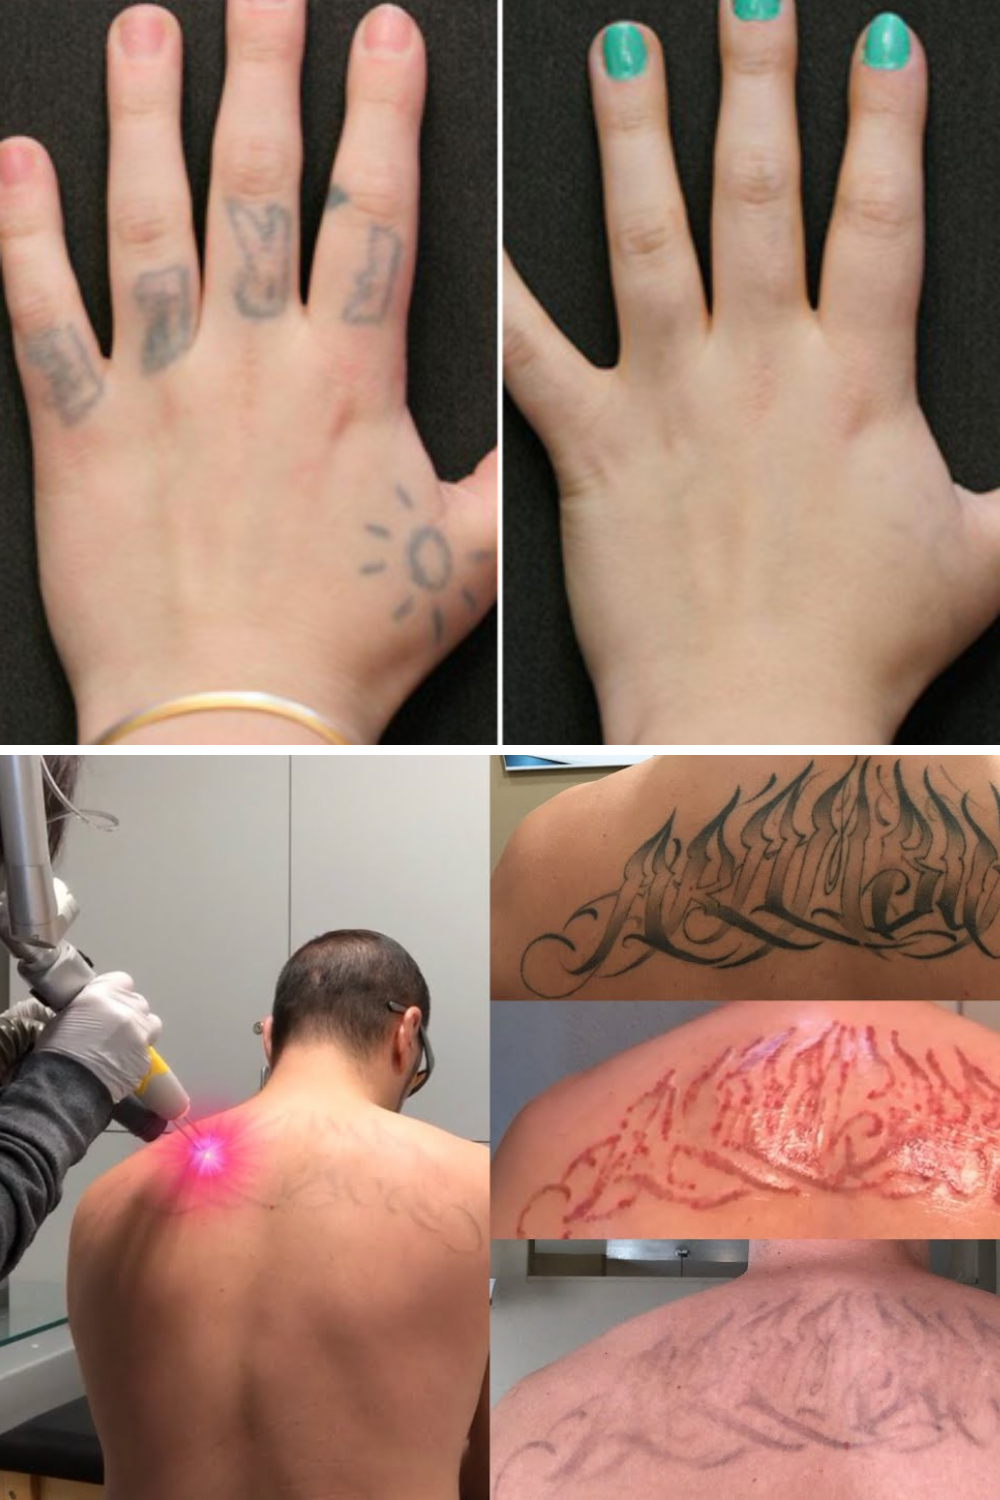 Does tattoo removal leave a scar